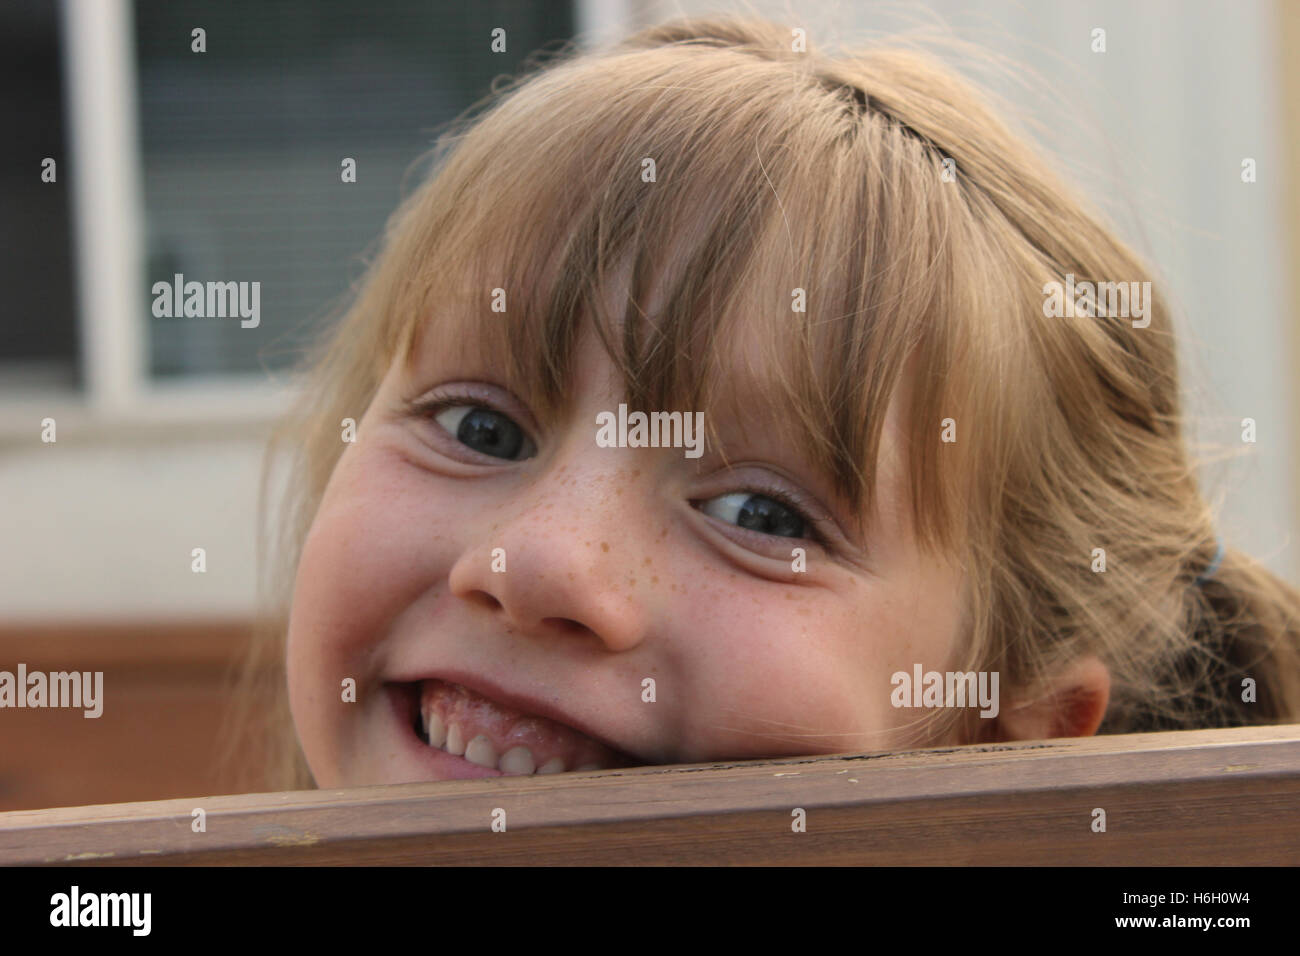 b close up of young freckled girl peeking over wooden rail and  smiling with teeth - Stock Image